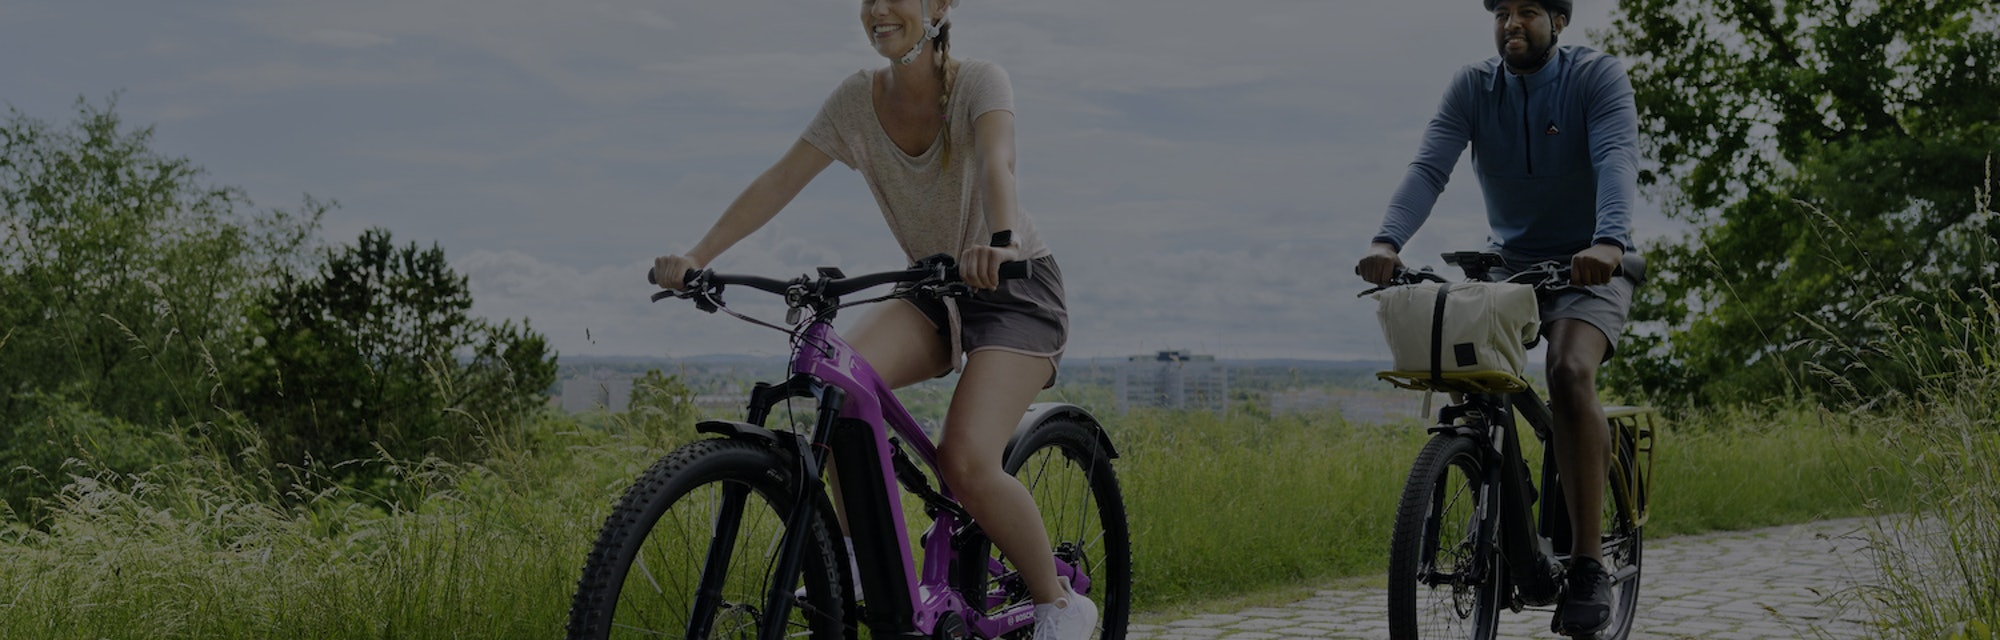 Bosch has unveiled new e-bike technologies that will make bicycles smarter with features like automa...